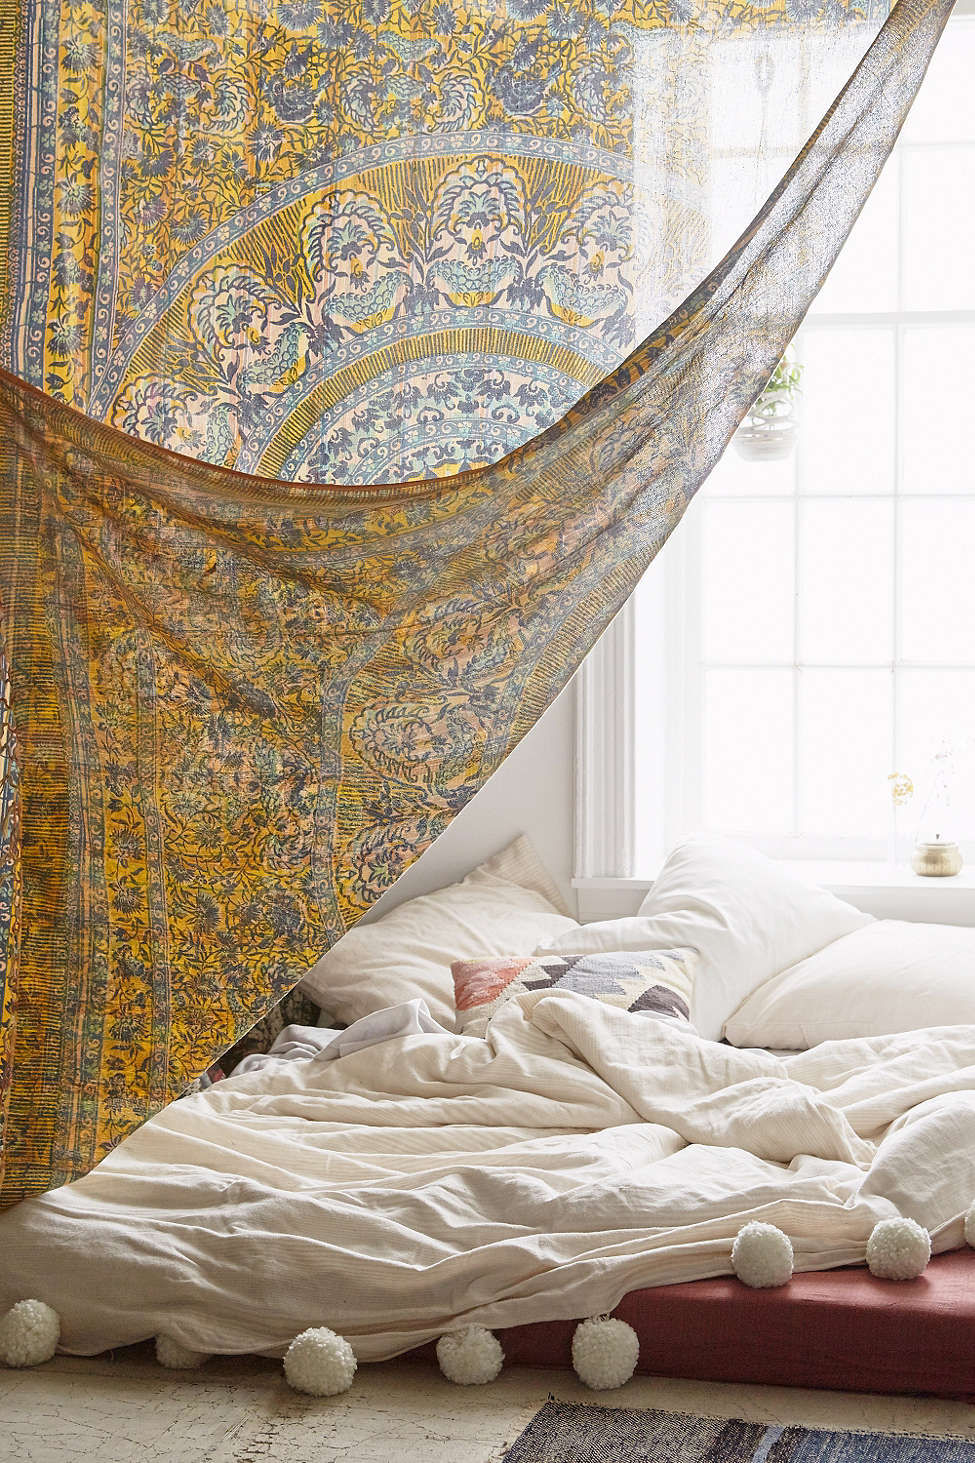 Merveilleux Bohemian Bedroom Ideas 21